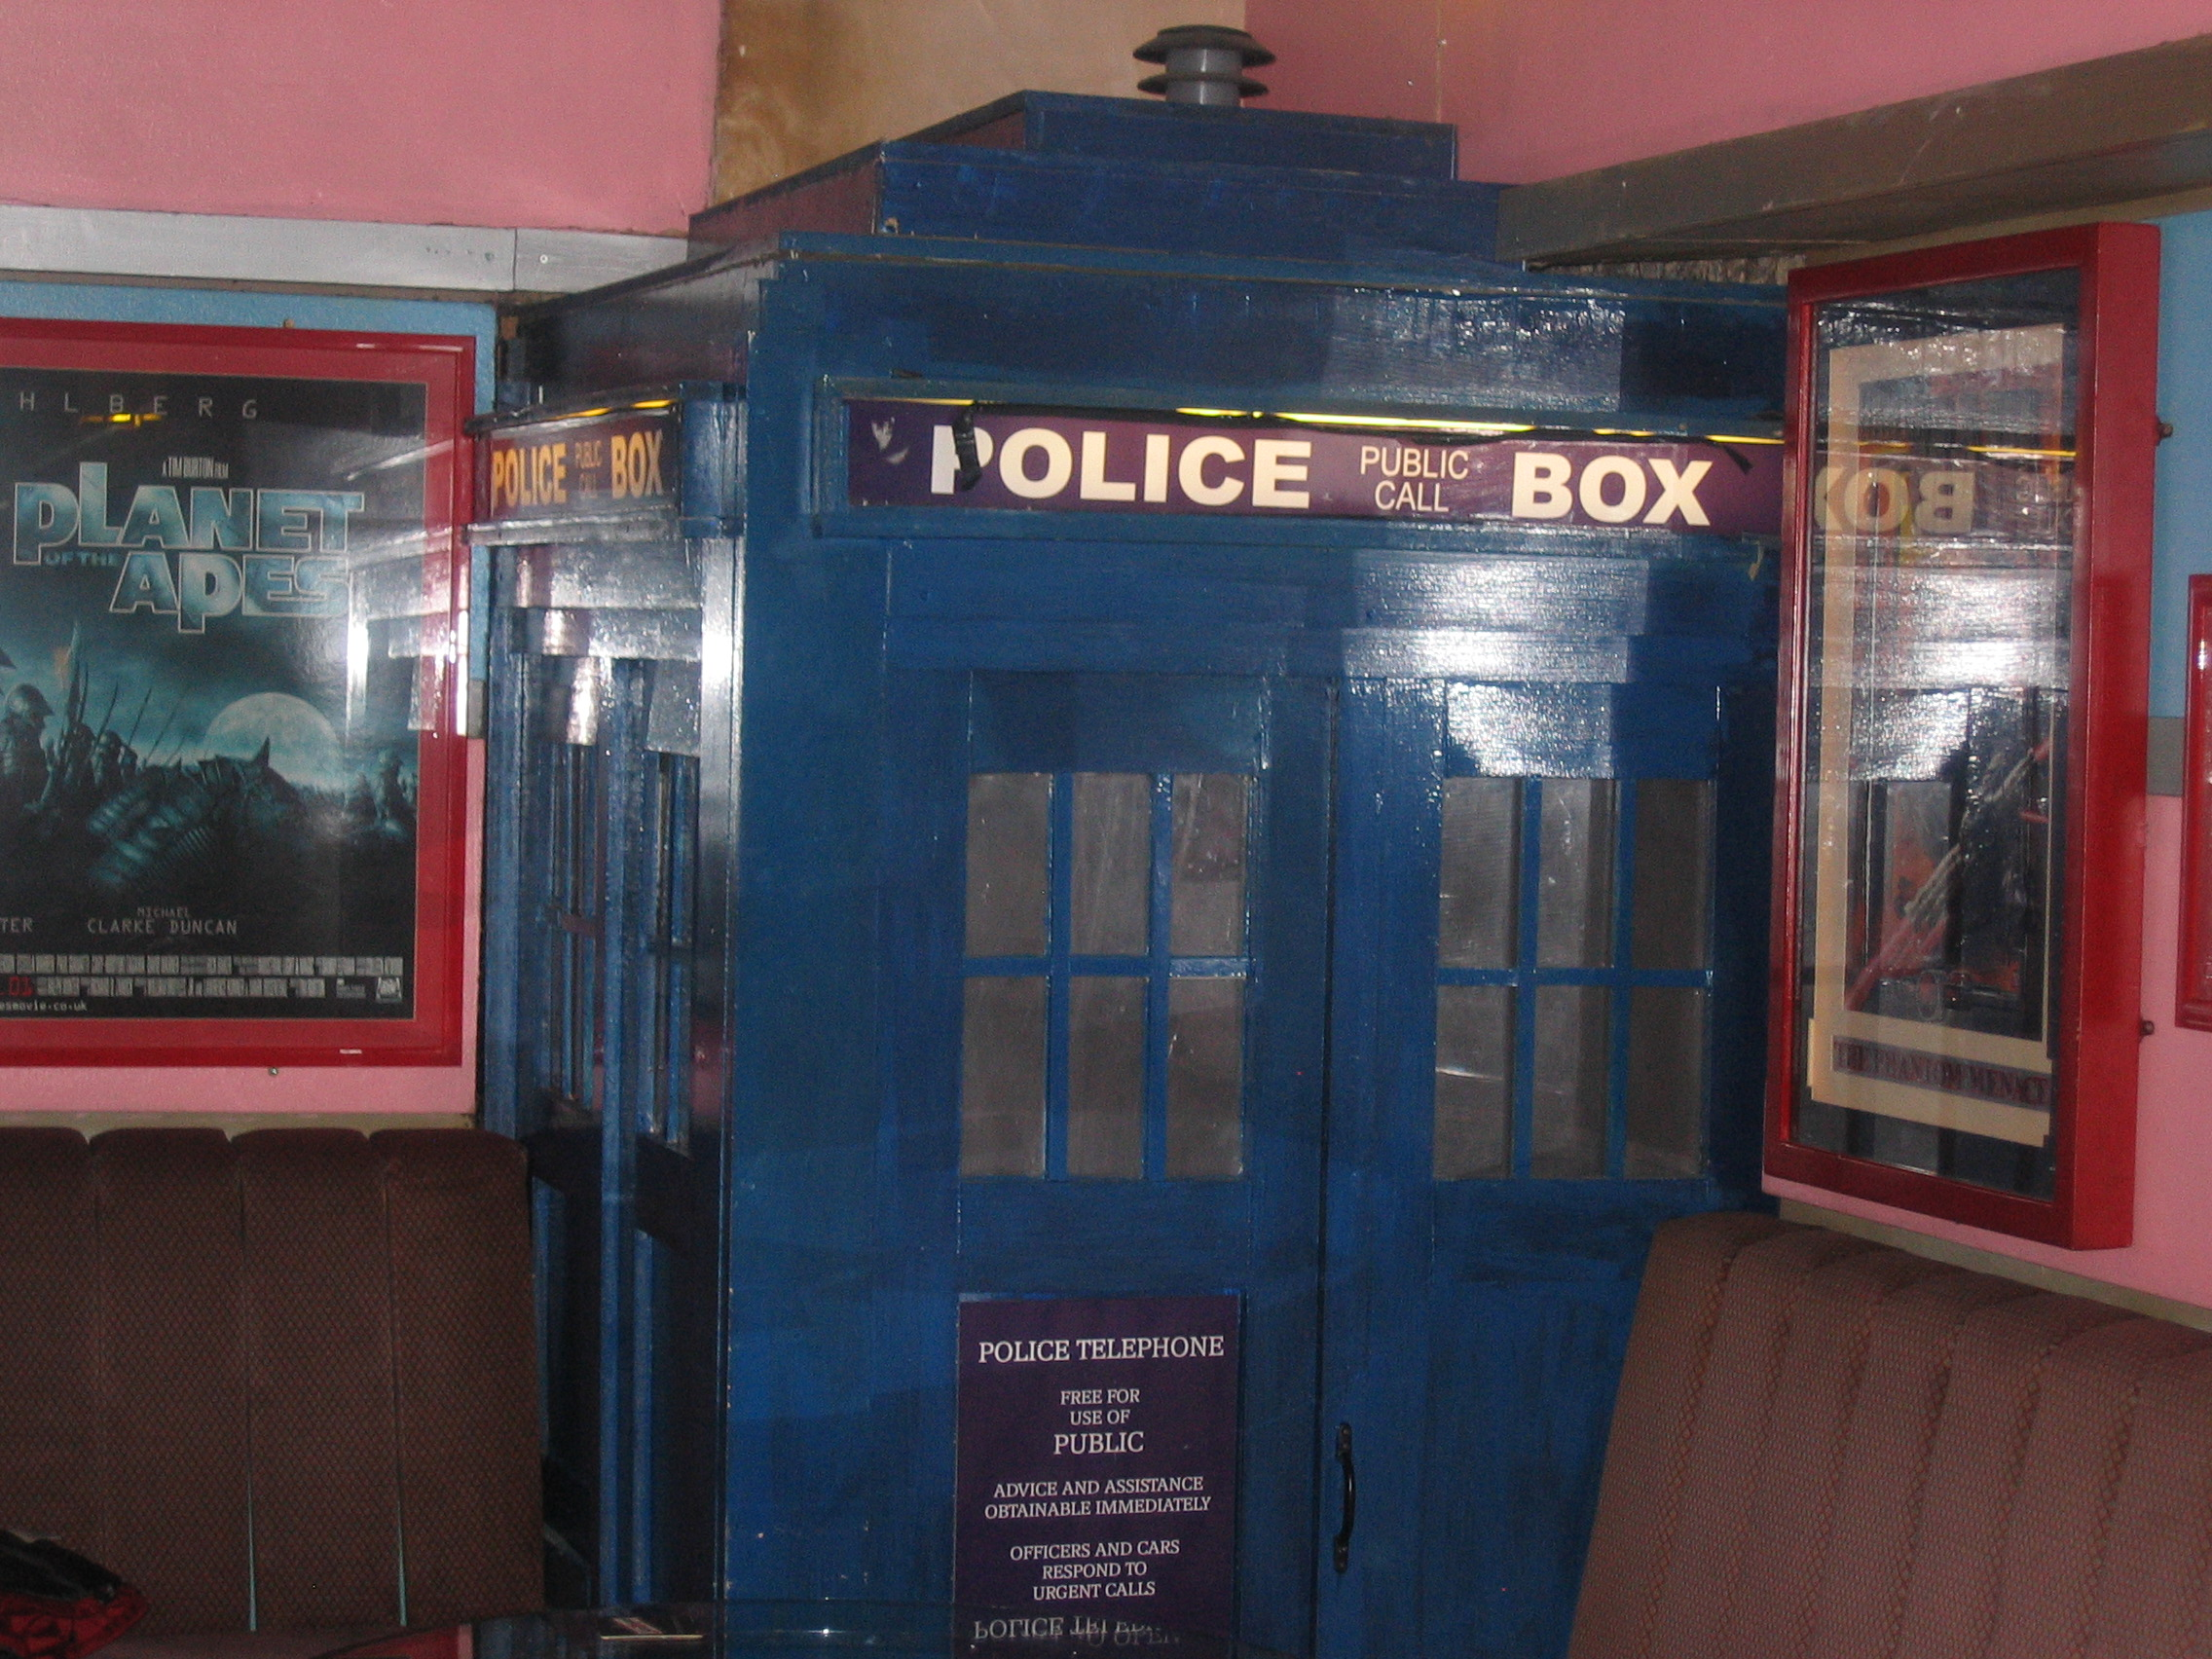 Photo taken by me – The TARDIS in FAB Café, Manchester